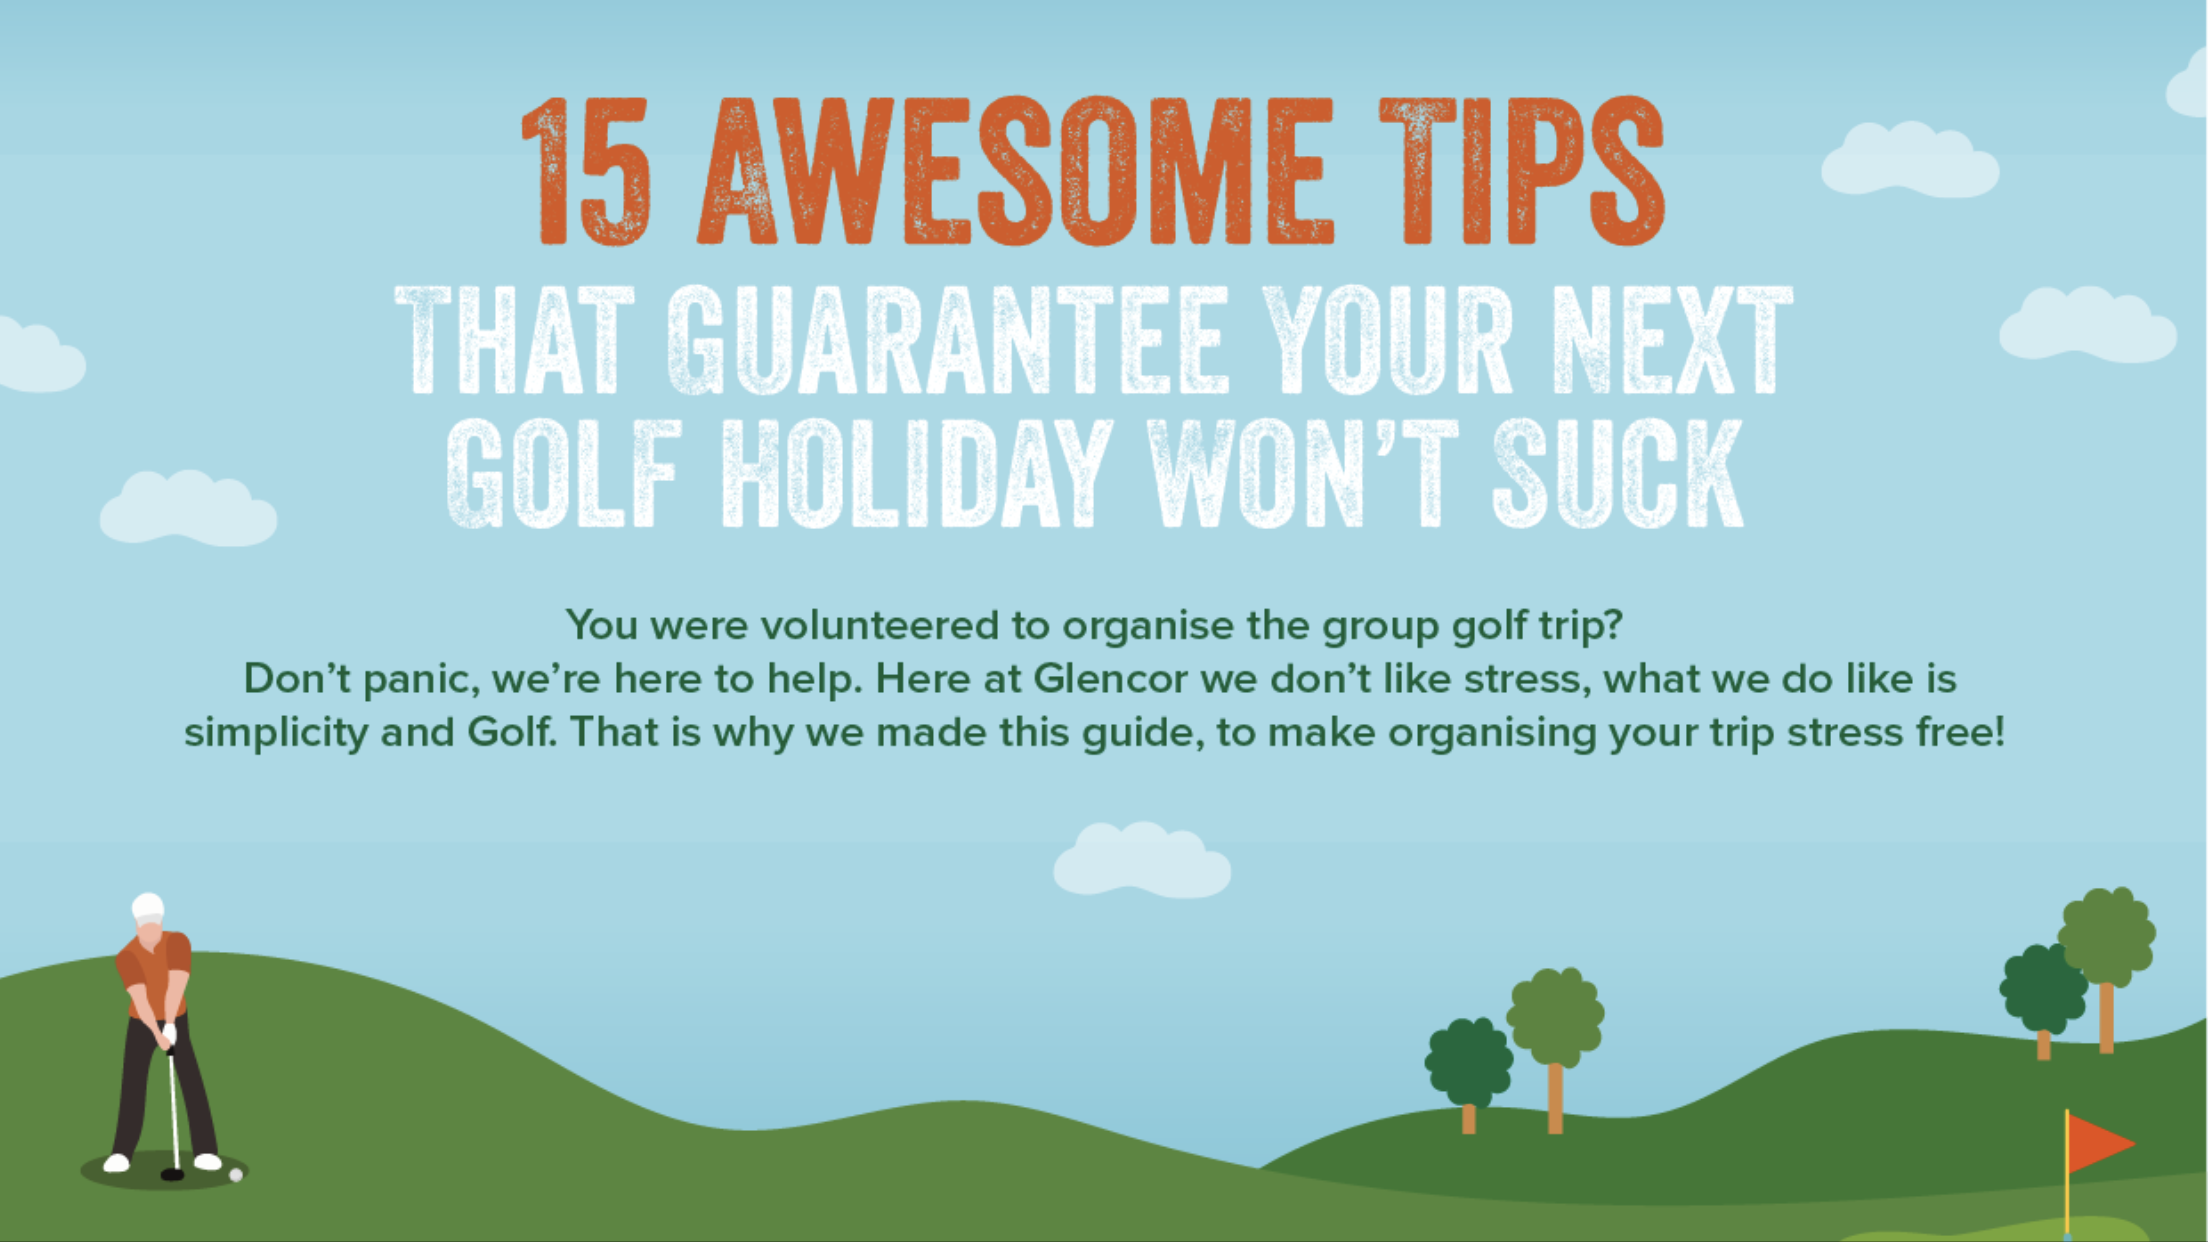 How to make sure you have the best golf holiday